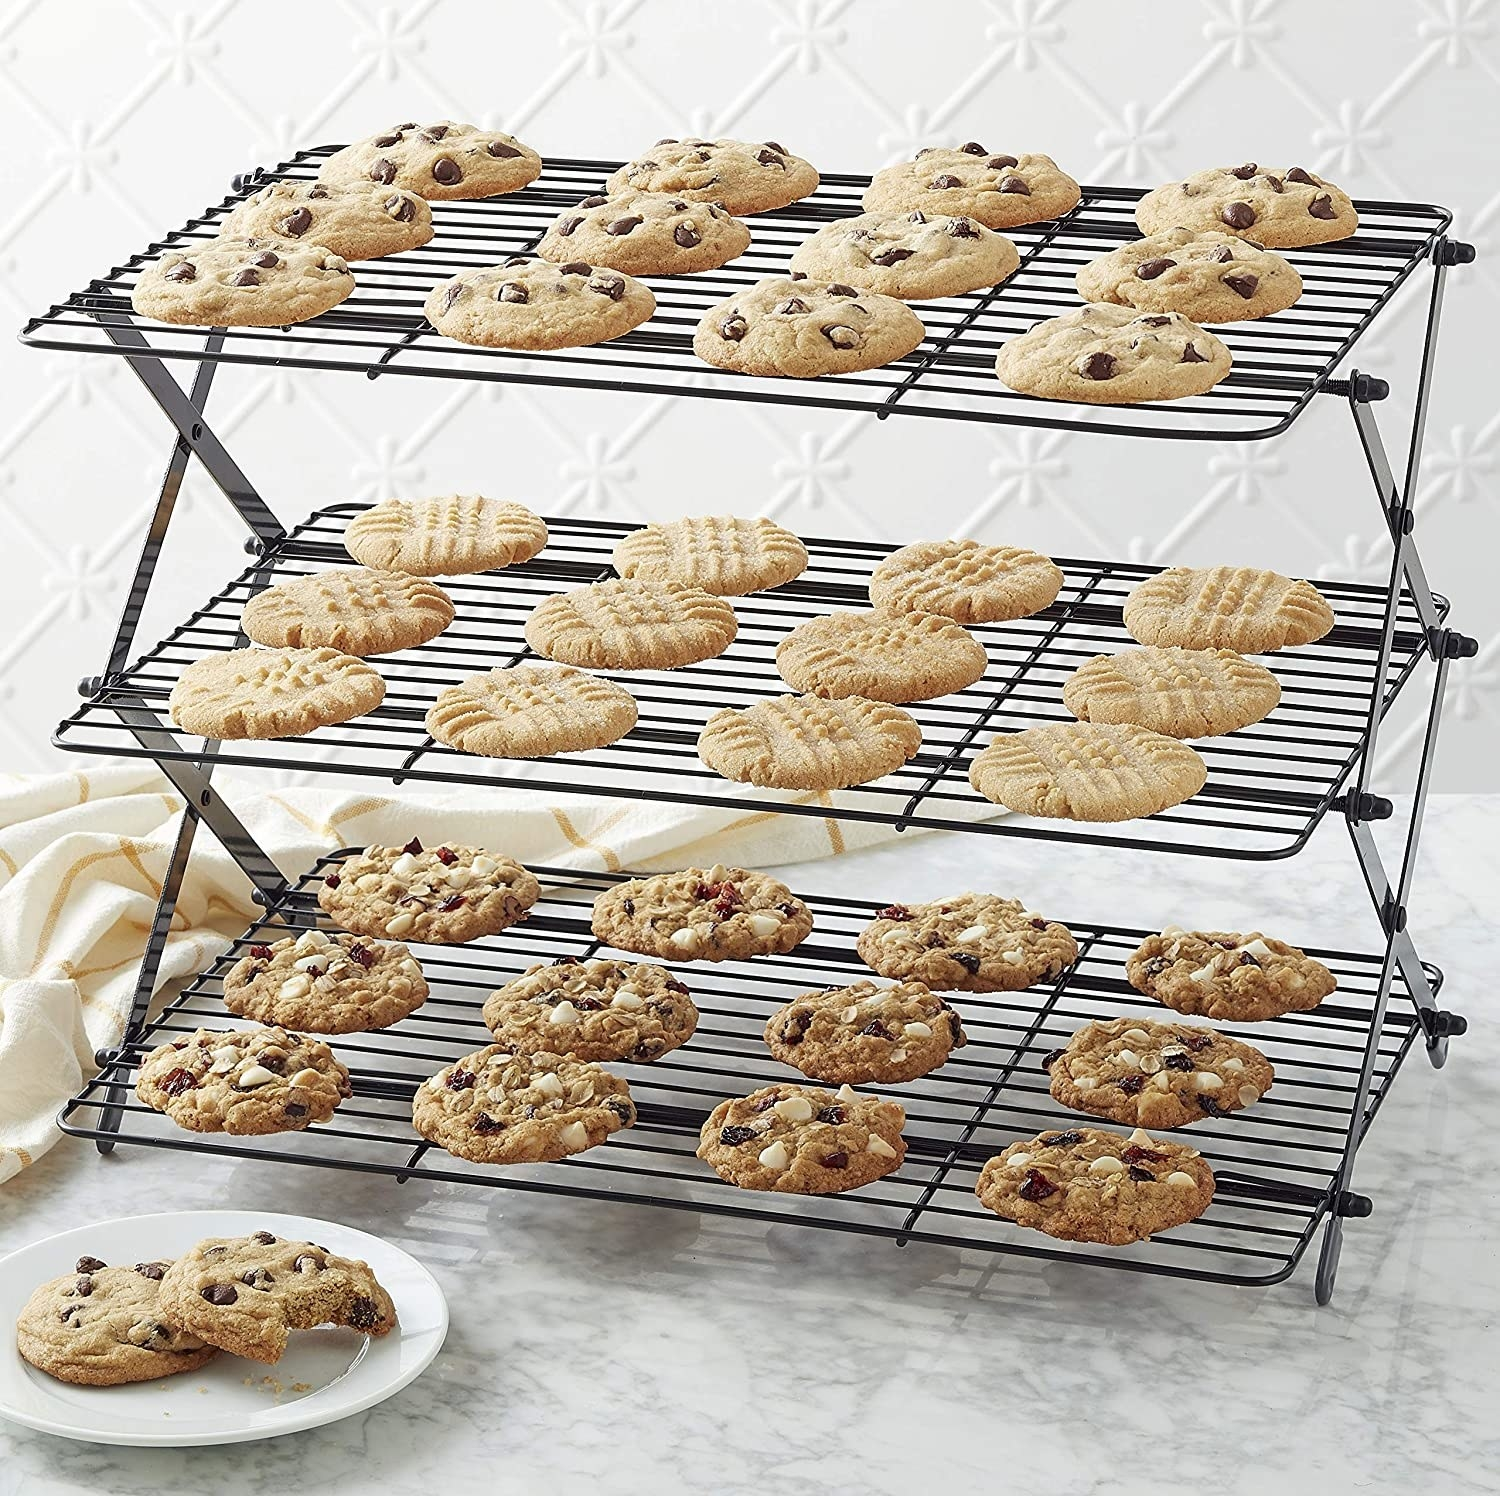 Three batches of cookies sitting on a three-tiered cooling rack